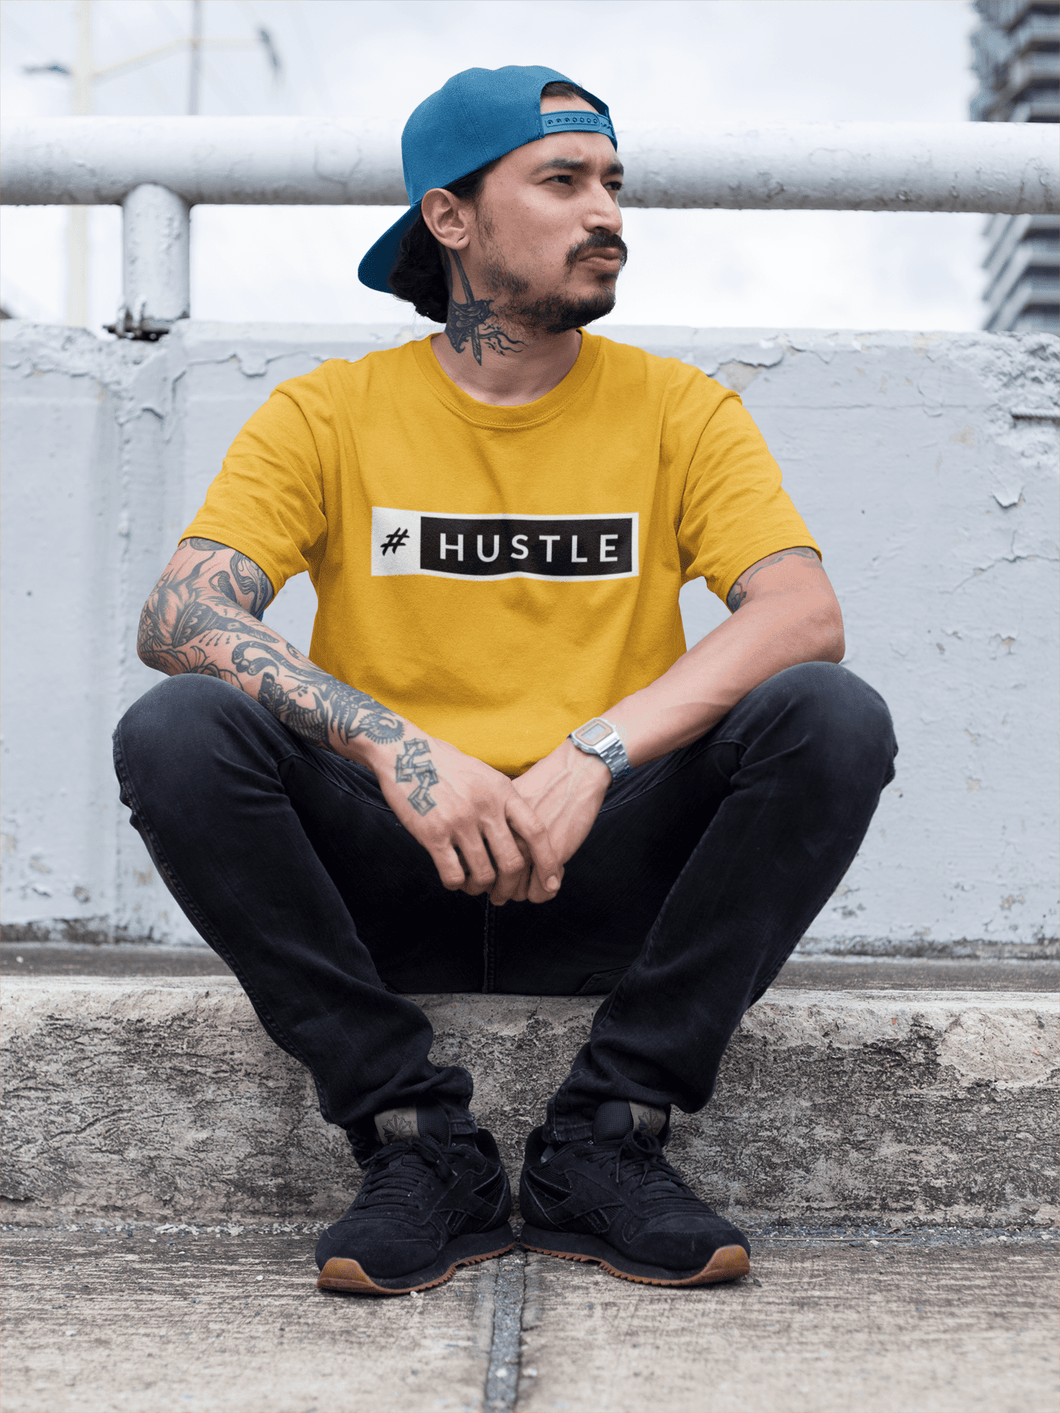 HUSTLE - HALF-SLEEVE T-SHIRTS - ANTHERR